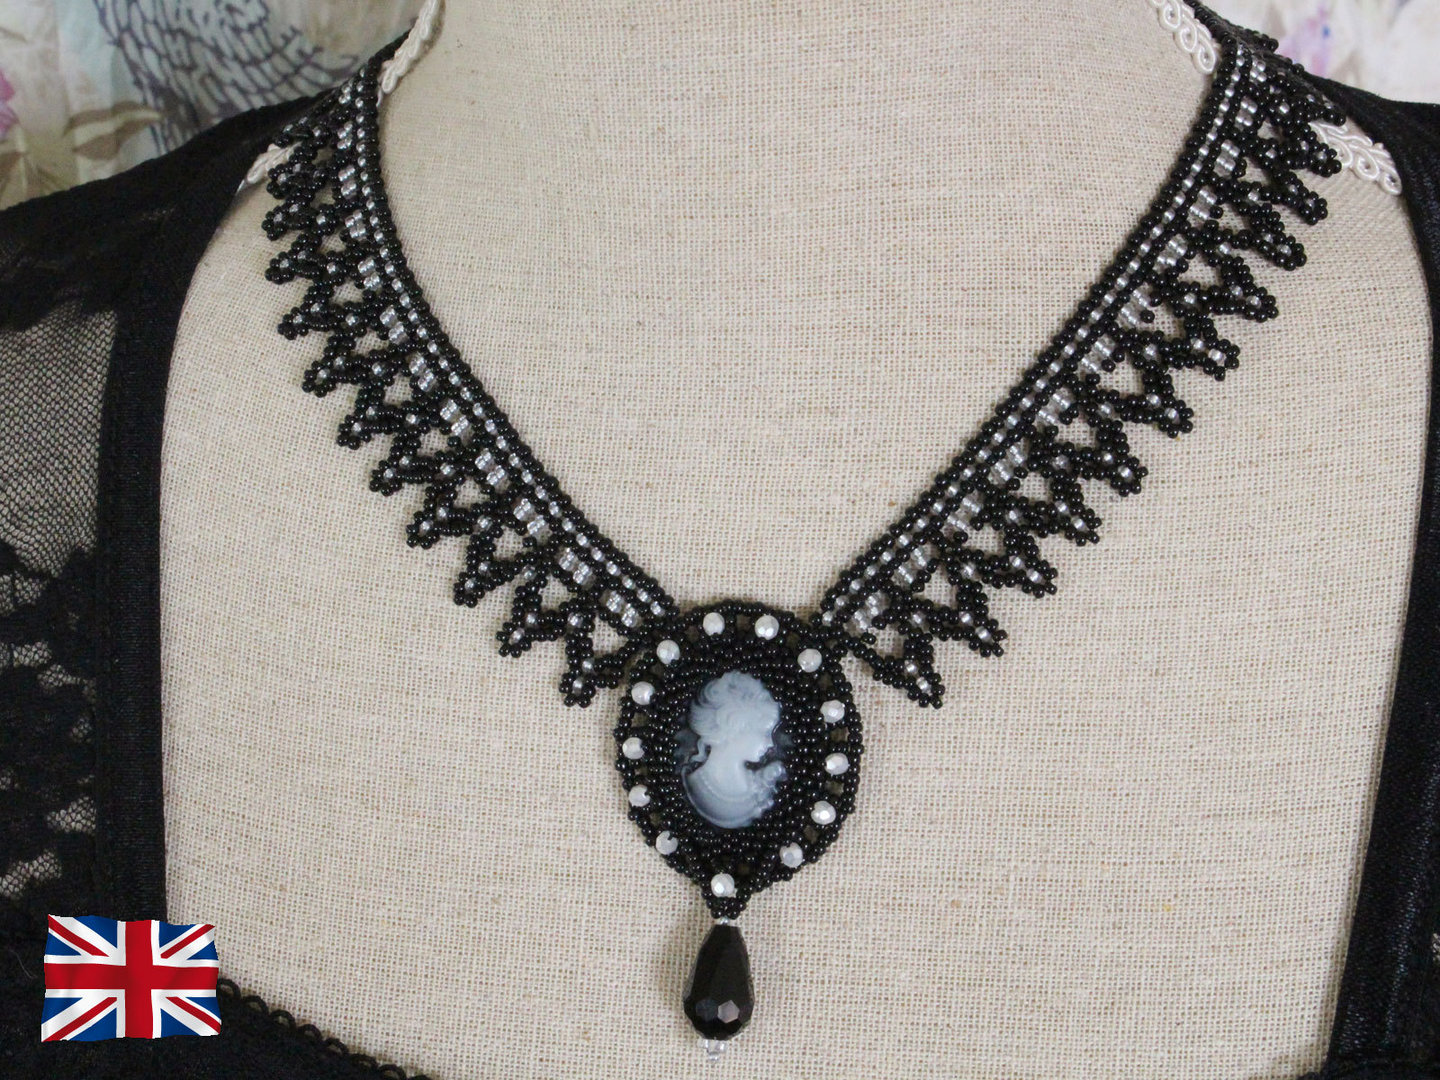 Tutorial for necklace 'Adelia' - English